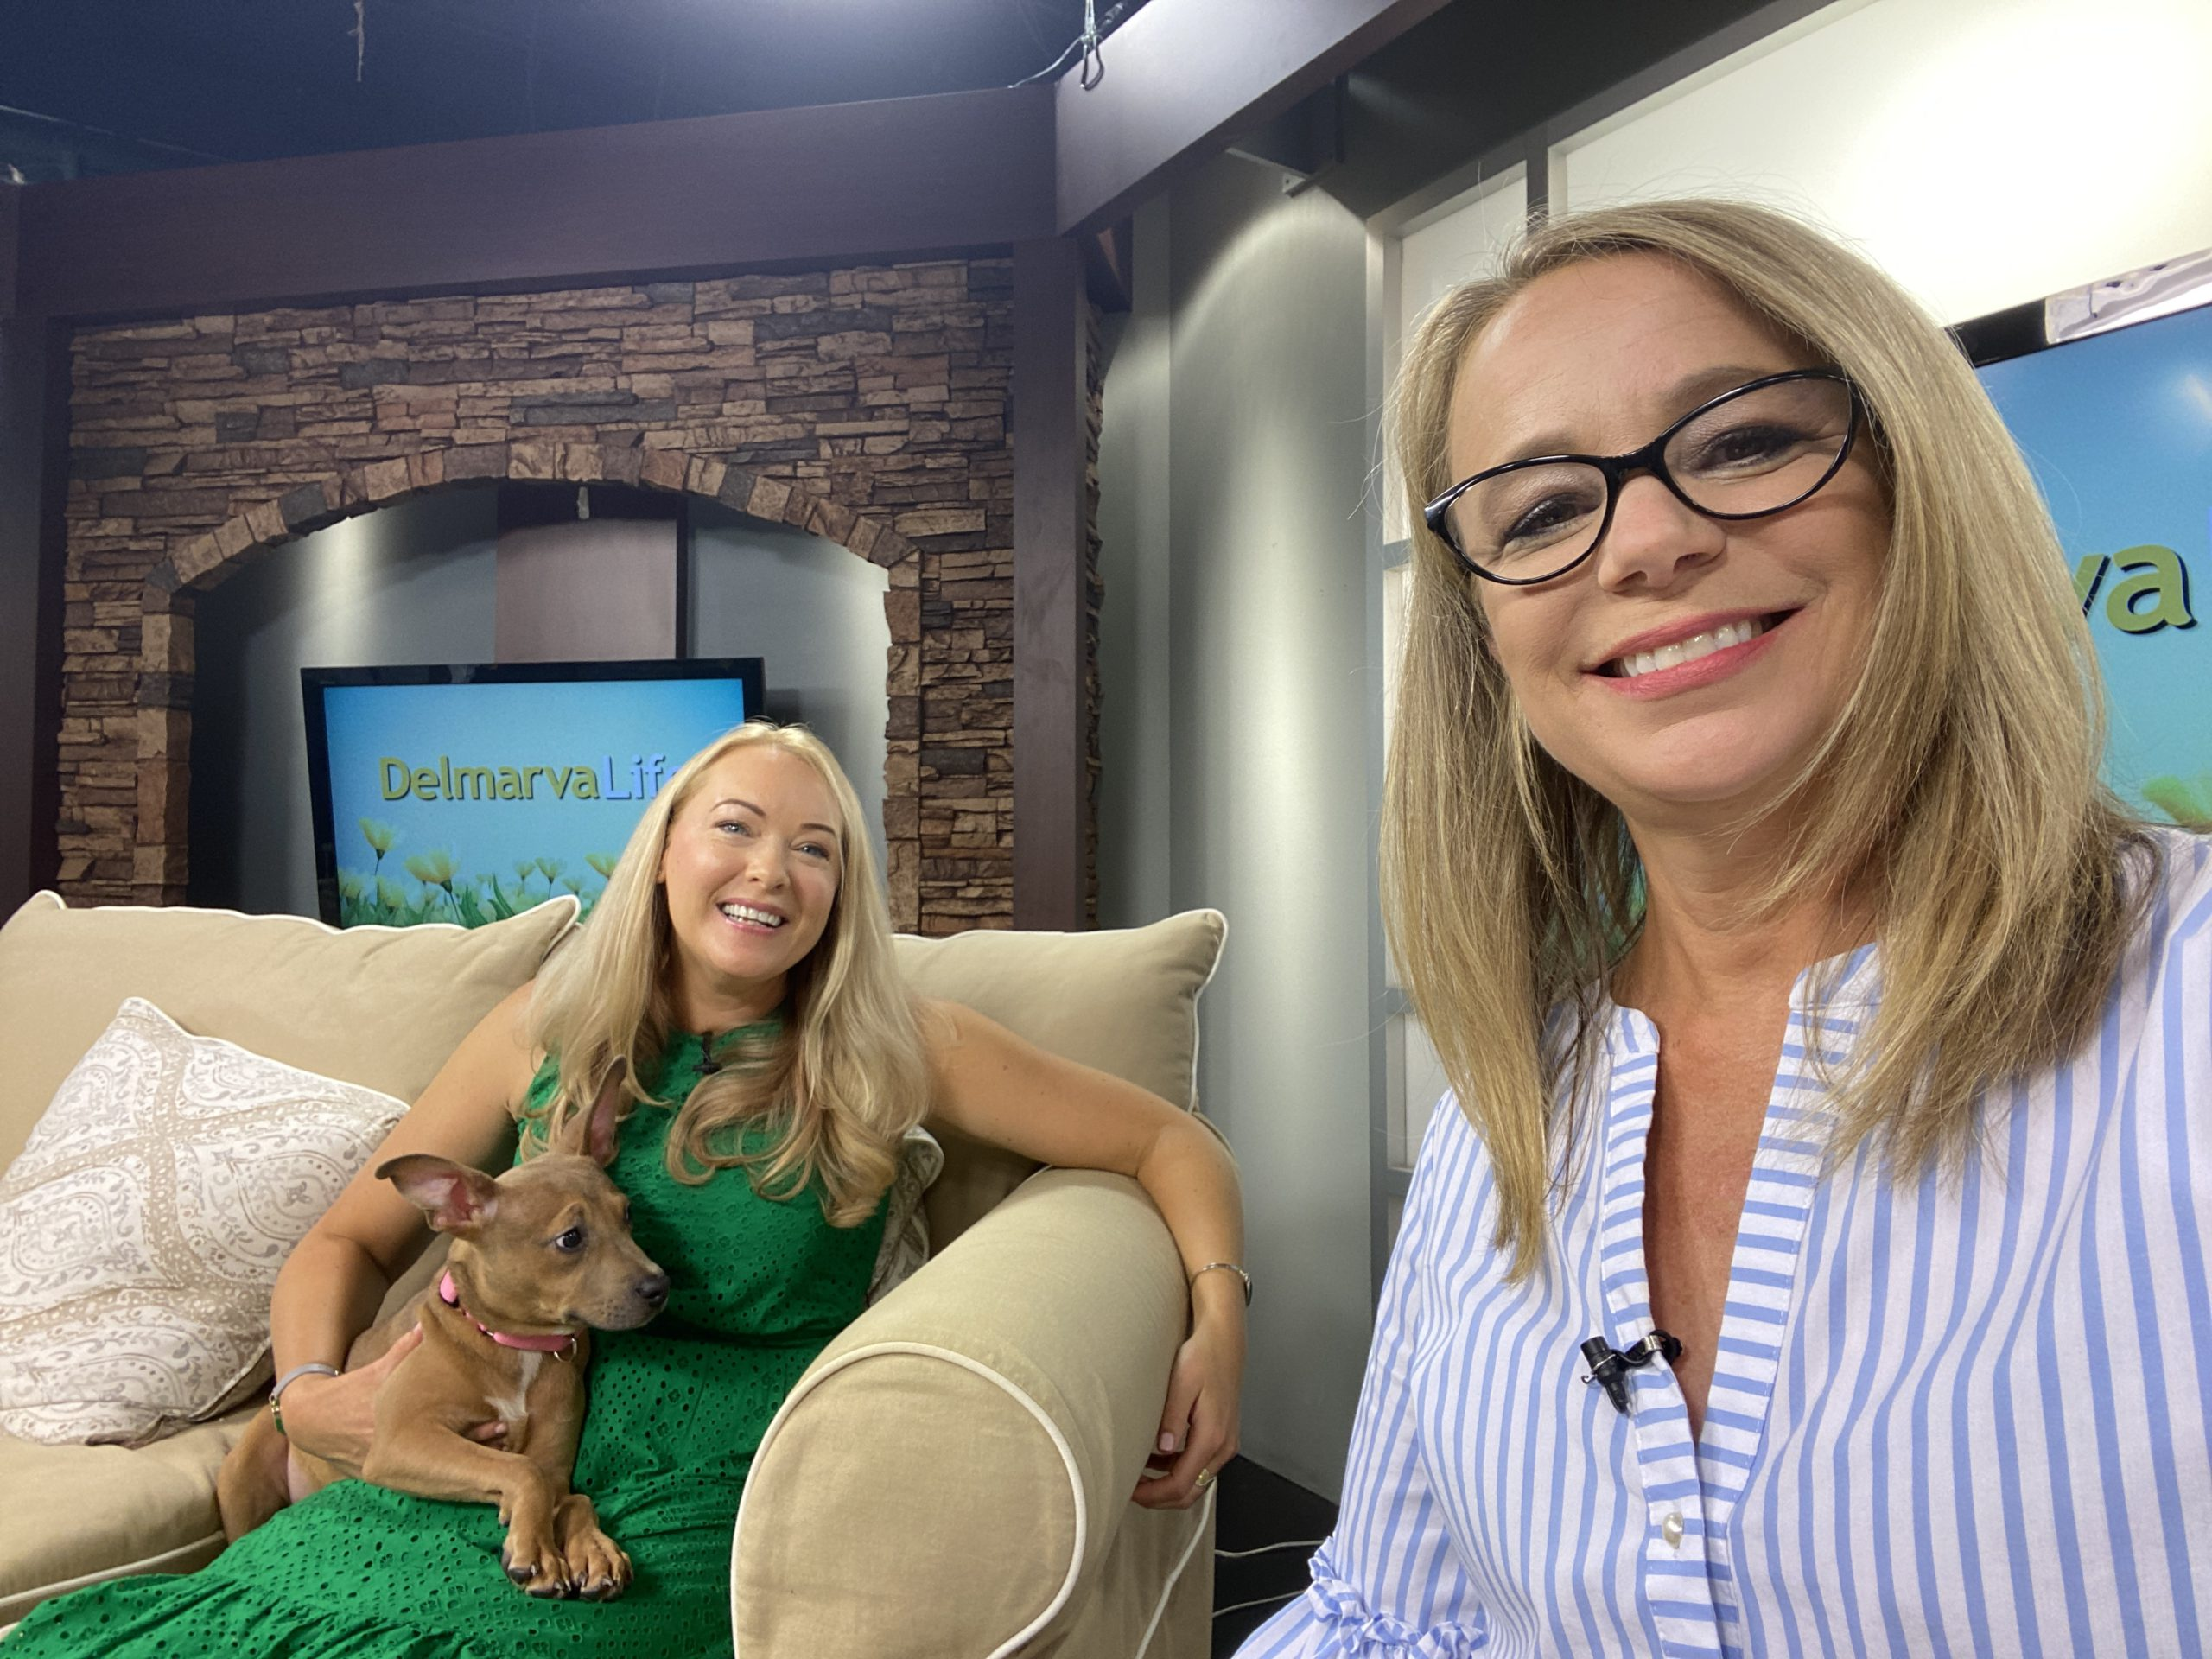 """We Talk to Cheryl Crowe, Founder & Organizer of """"Run For the Paws 5k"""" About The Event"""